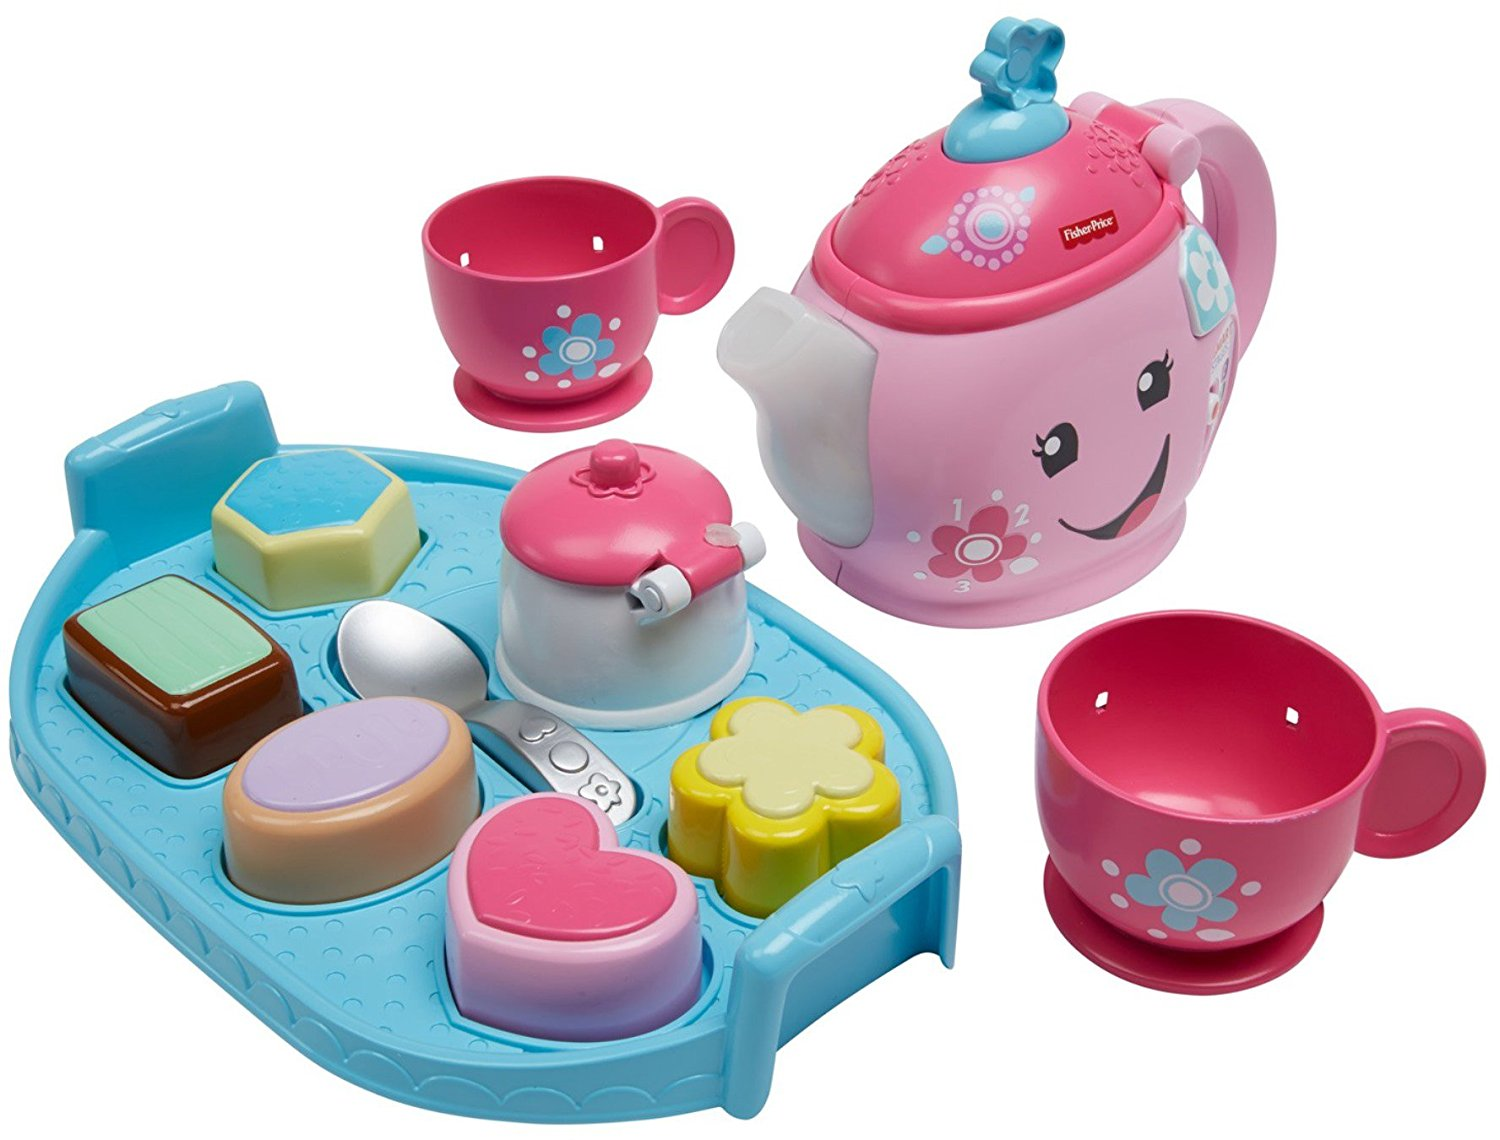 Childrens Tea Sets 2019 • Toy Review Experts